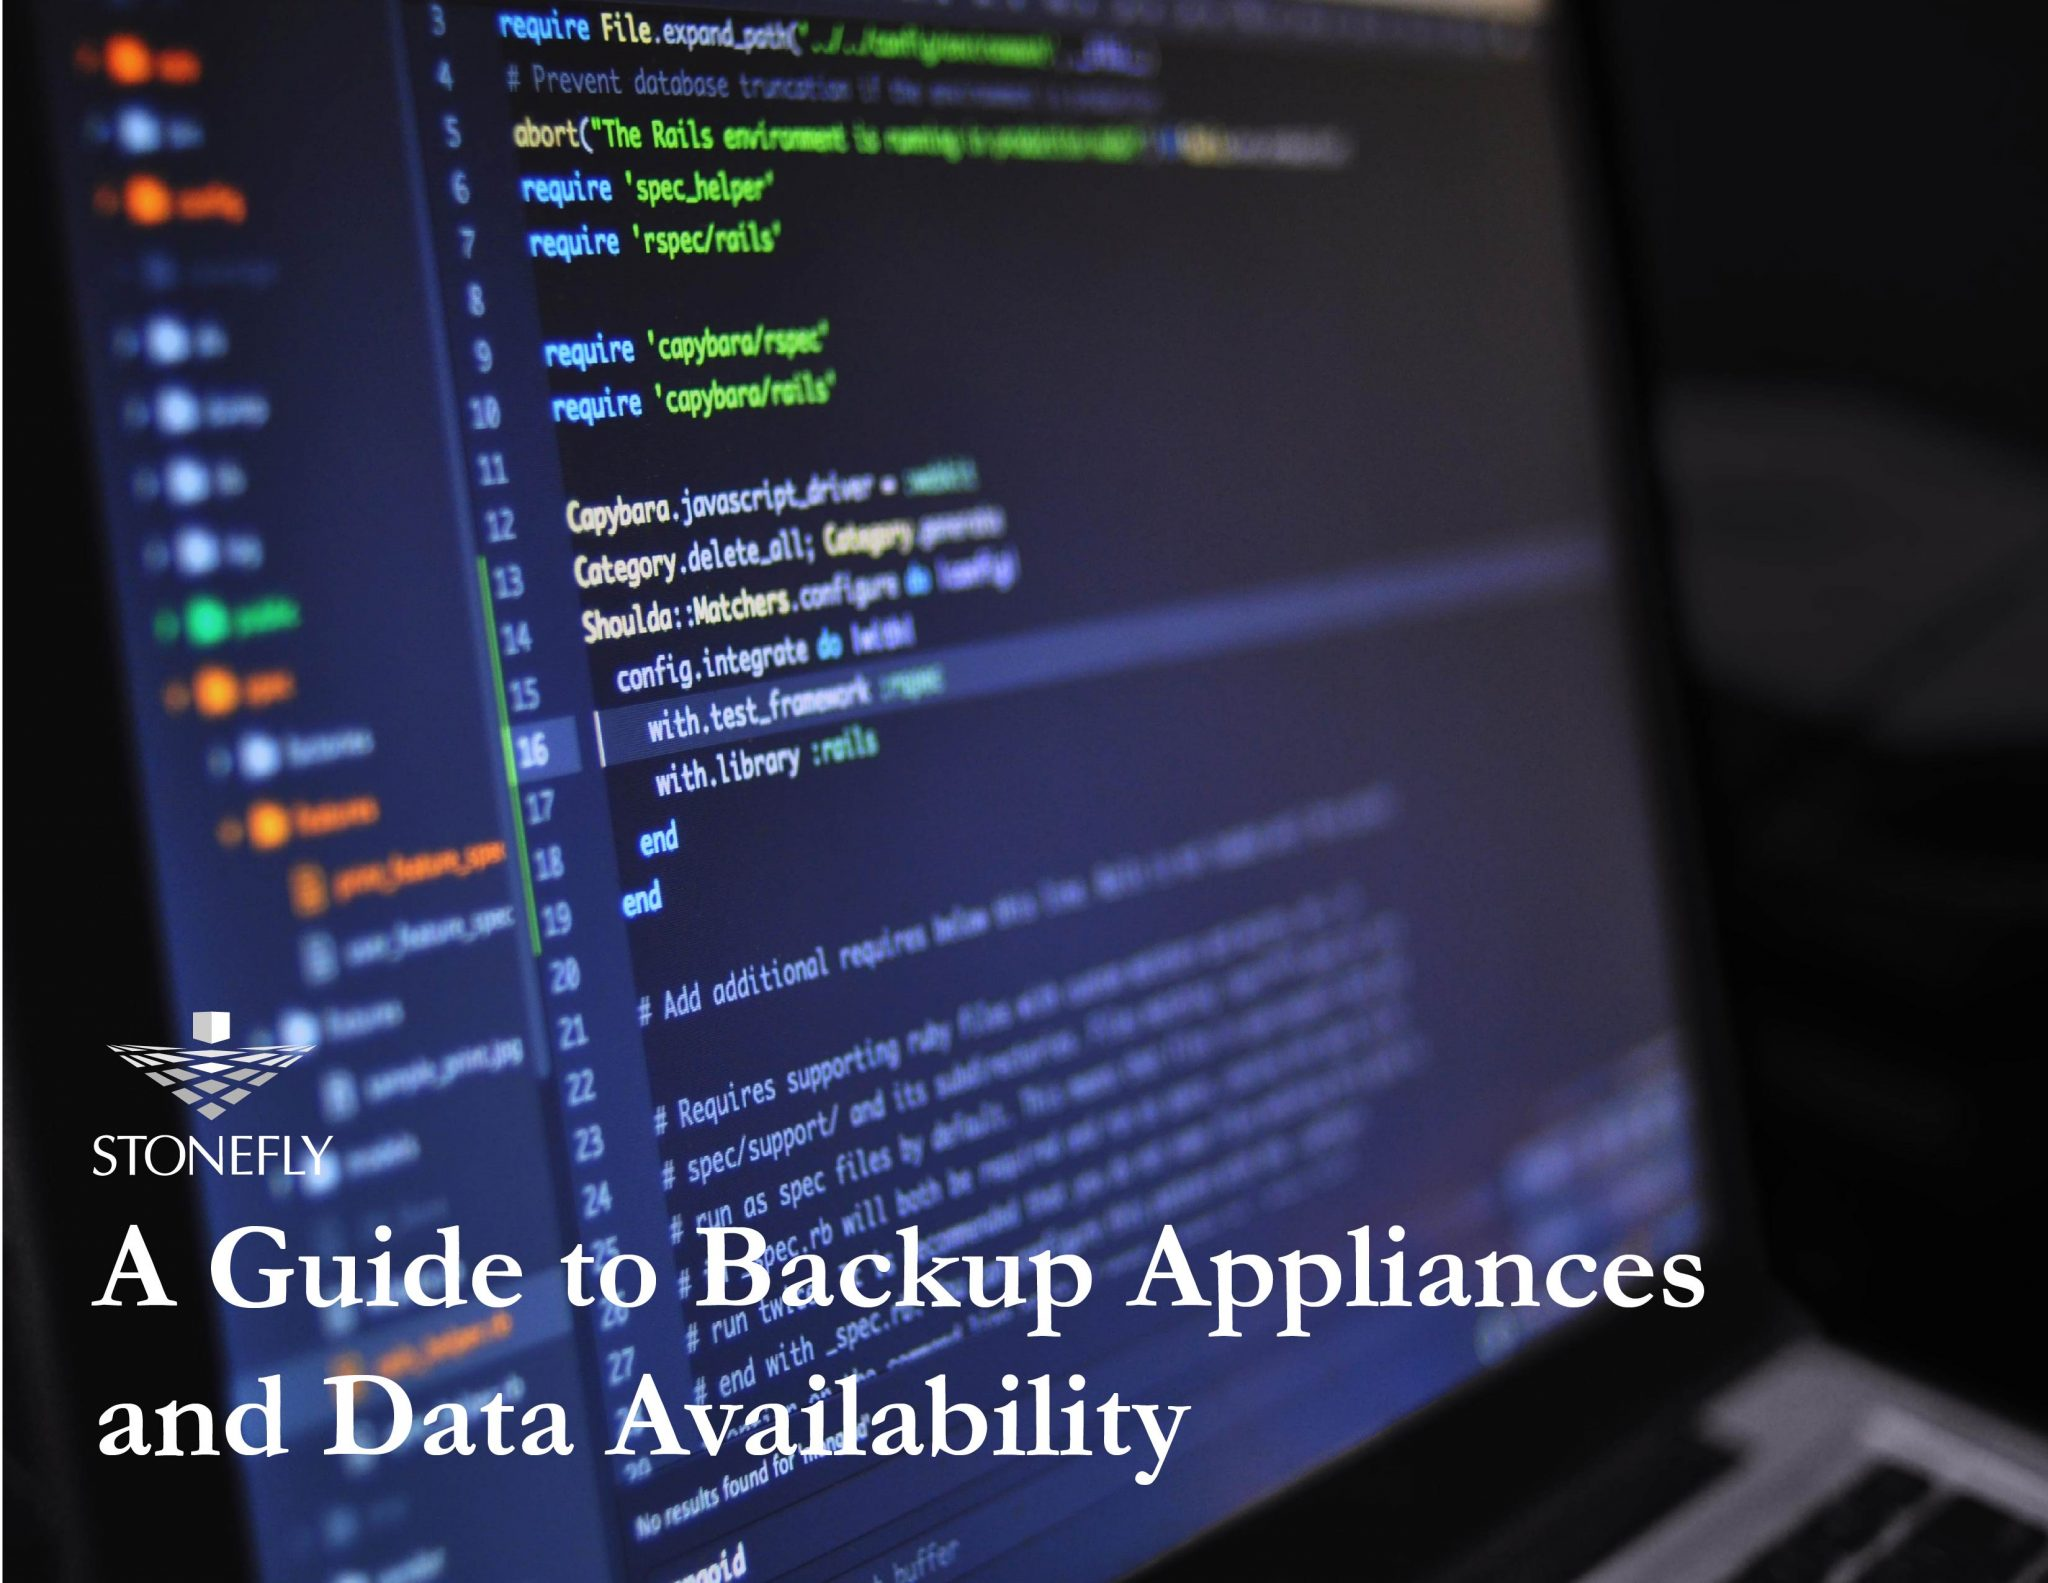 Free Ebook: A Guide to Backup Appliances and Data Availability